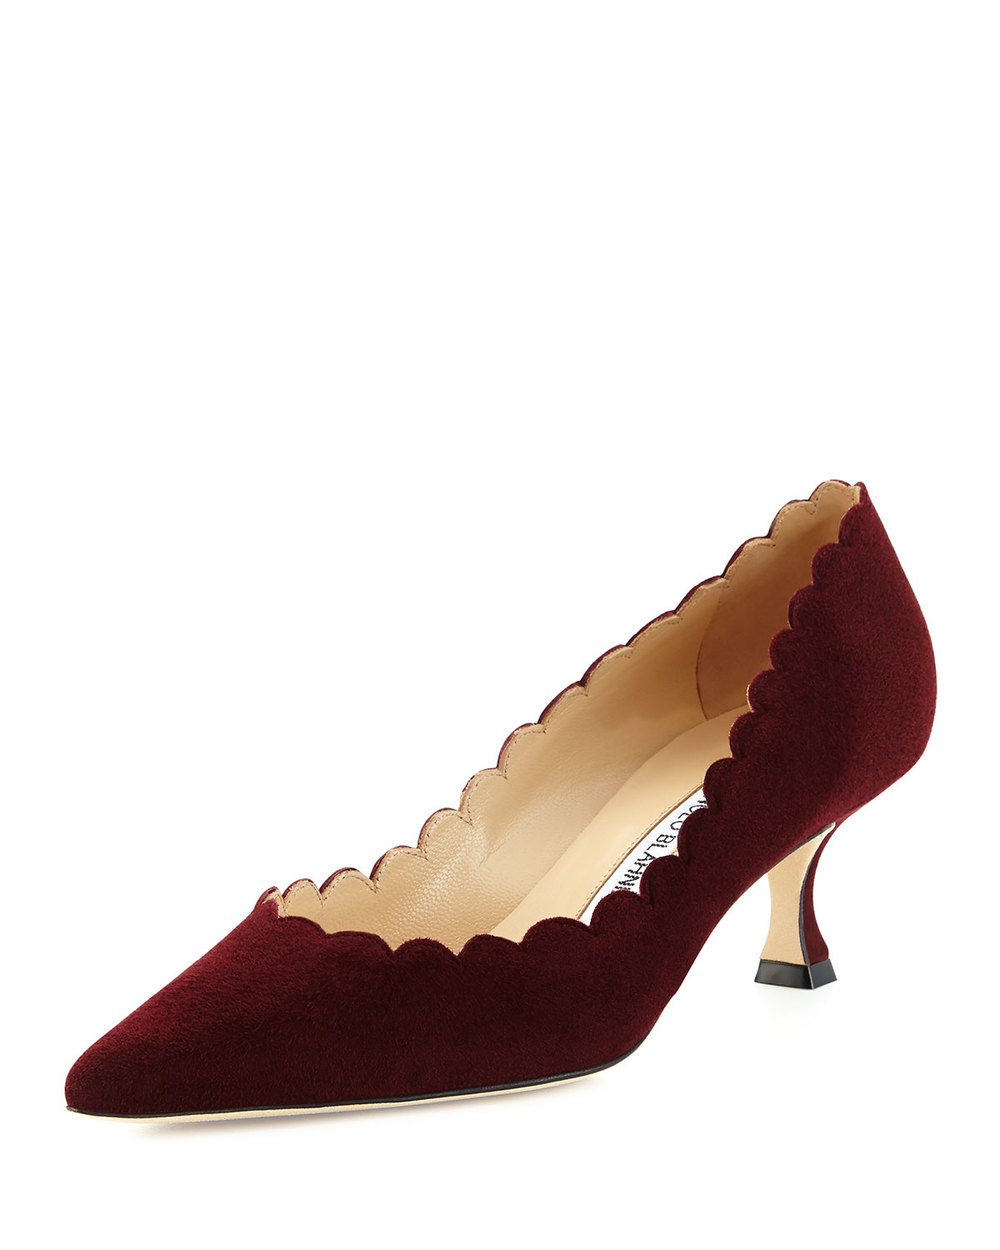 Manalo Blahnik Scalloped.jpg